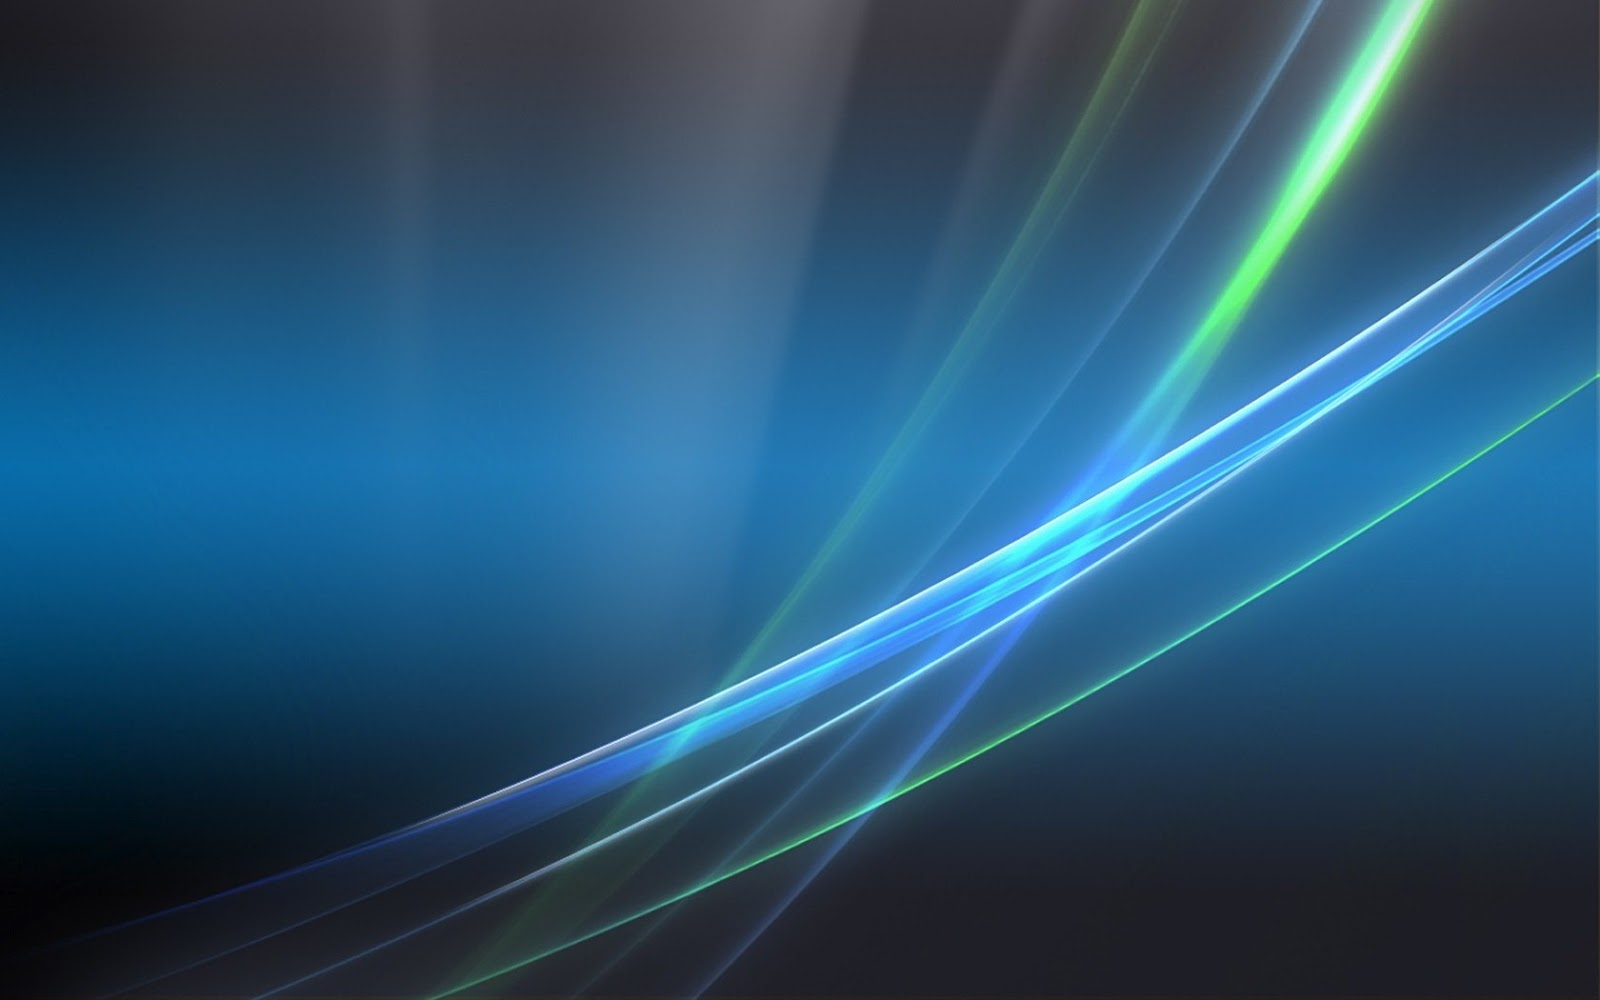 HHMZZ: Download Free HD Wallpapers Of Windows 7